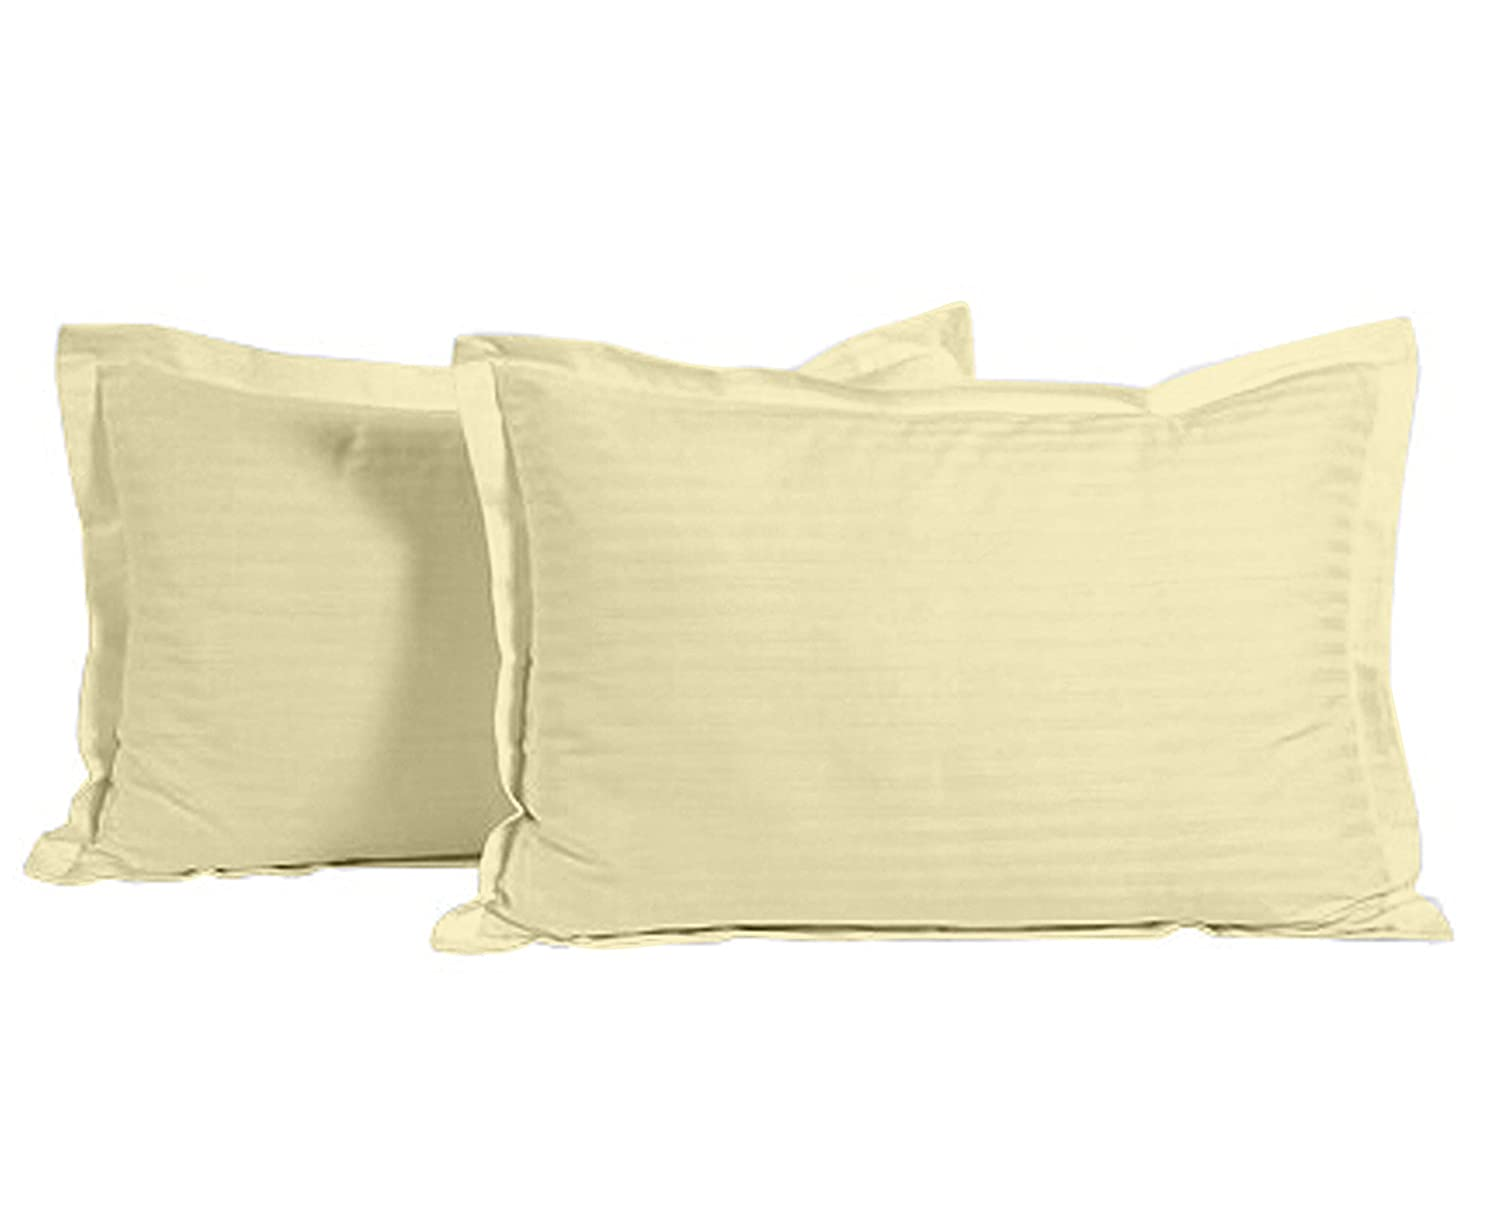 Ahmedabad Cotton Luxurious 2 Piece Sateen Pillow Cover Set -